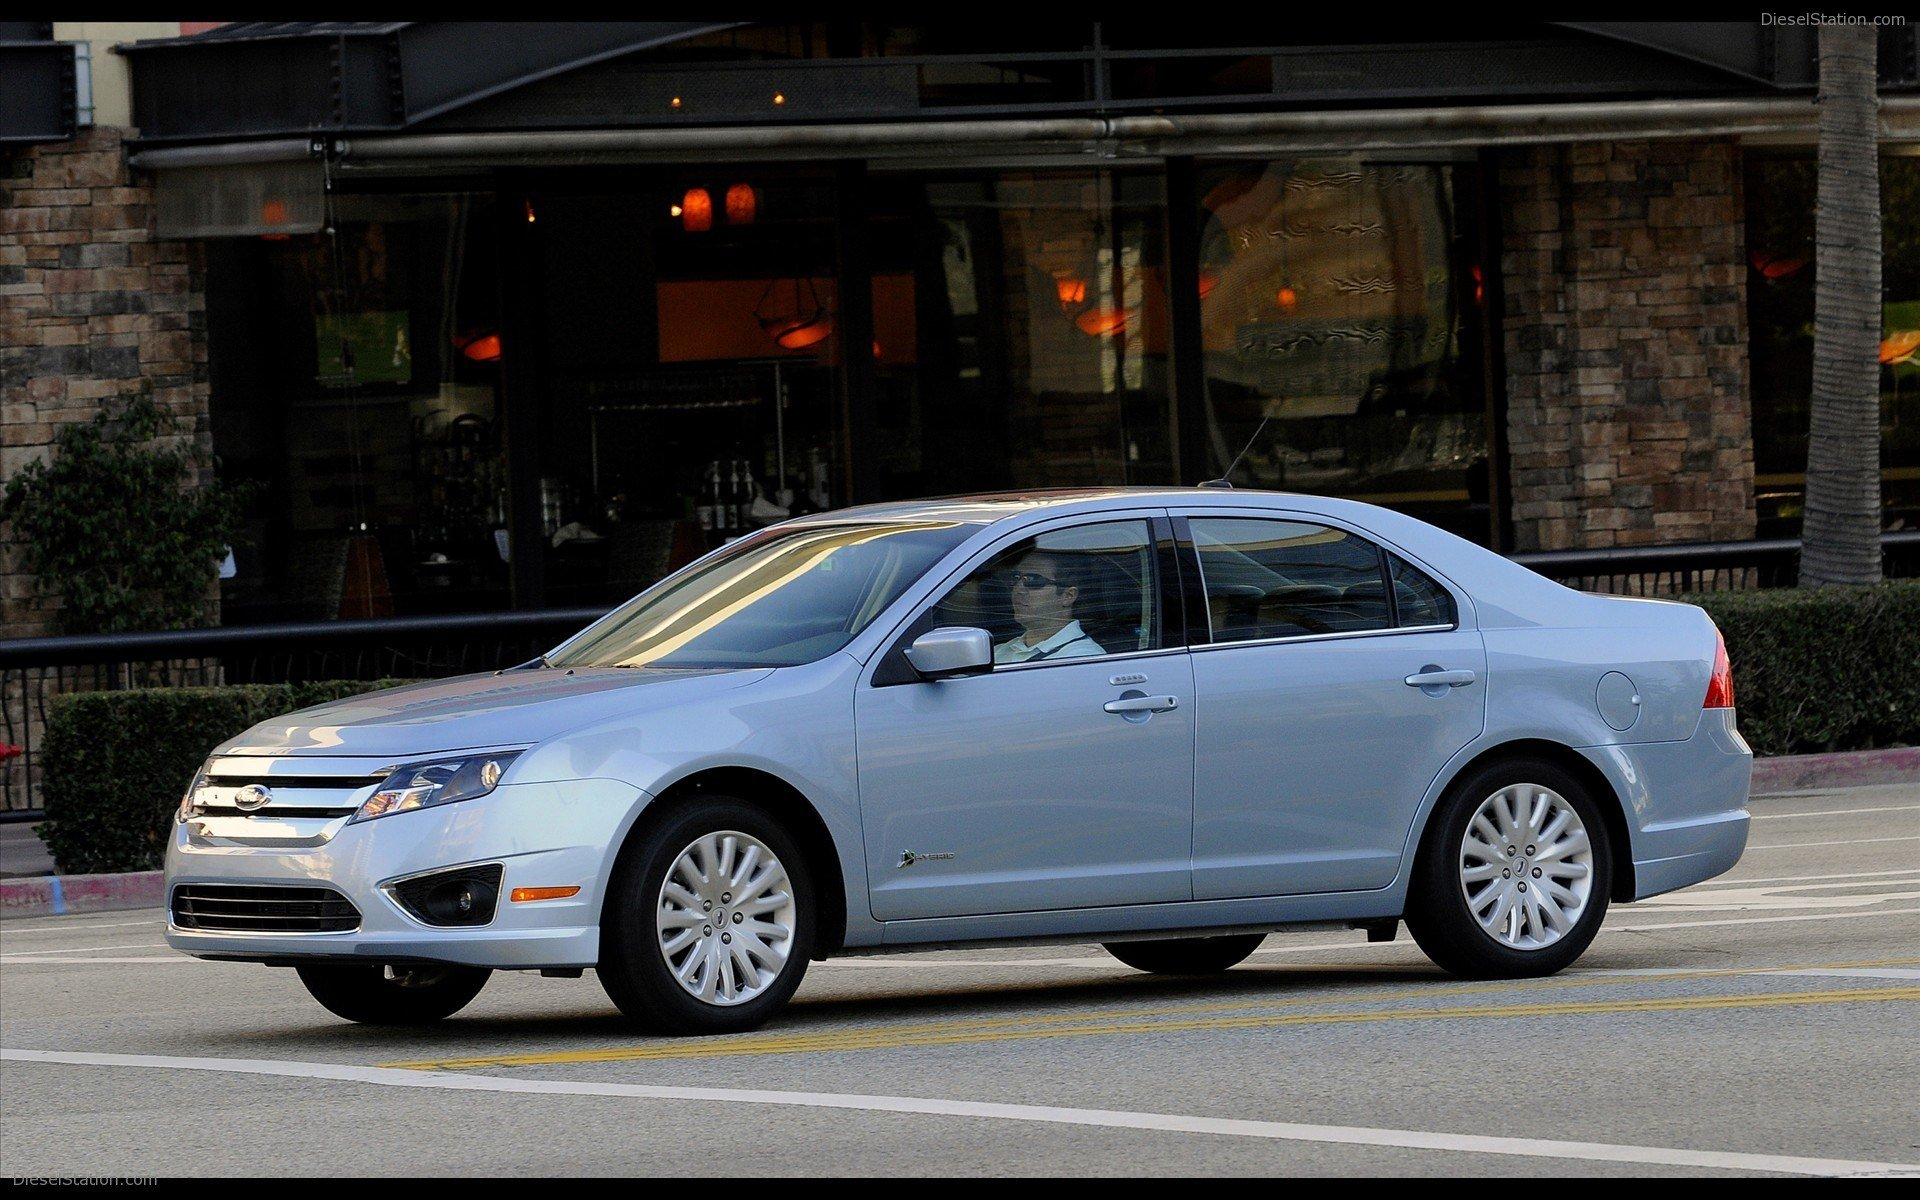 Latest 2010 Ford Fusion Widescreen Exotic Car Image 10 Of 26 Free Download